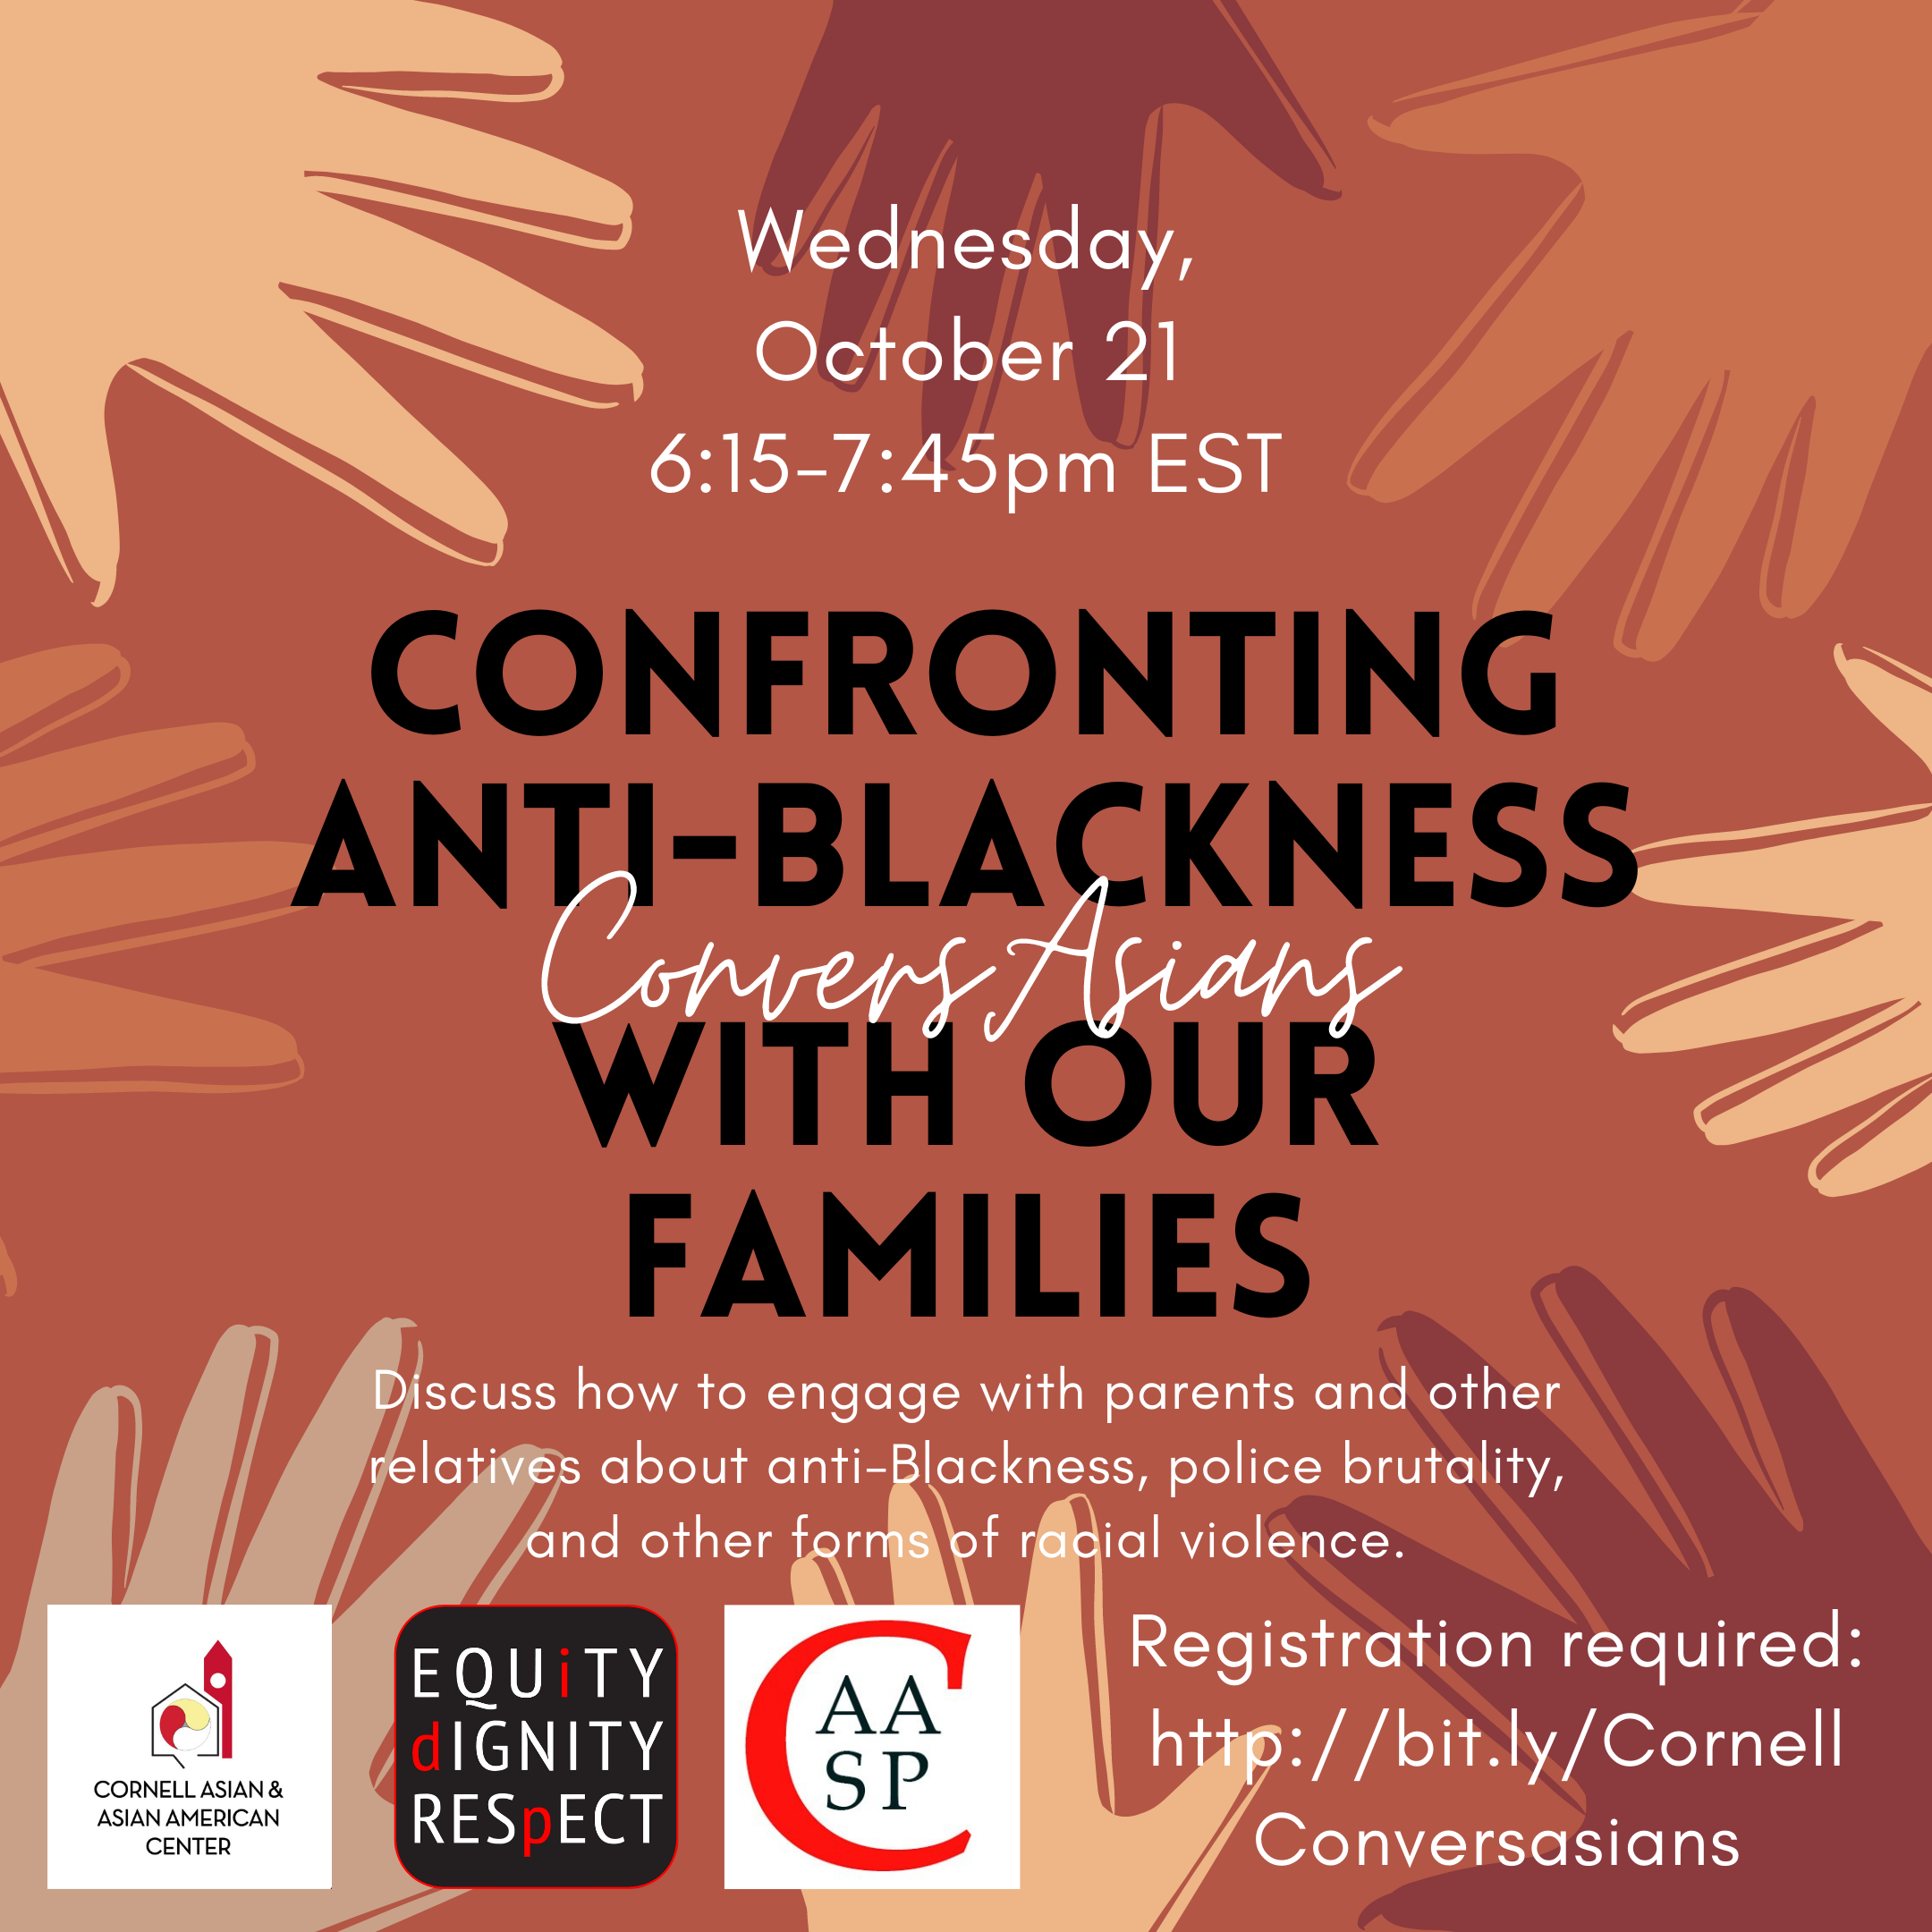 Join us for ConversAsians: Confronting Anti-Blackness With Our Families. The event is on Wednesday, October 21 at 6:15pm EST. Registration is required at http://bit.ly/CornellConversasians